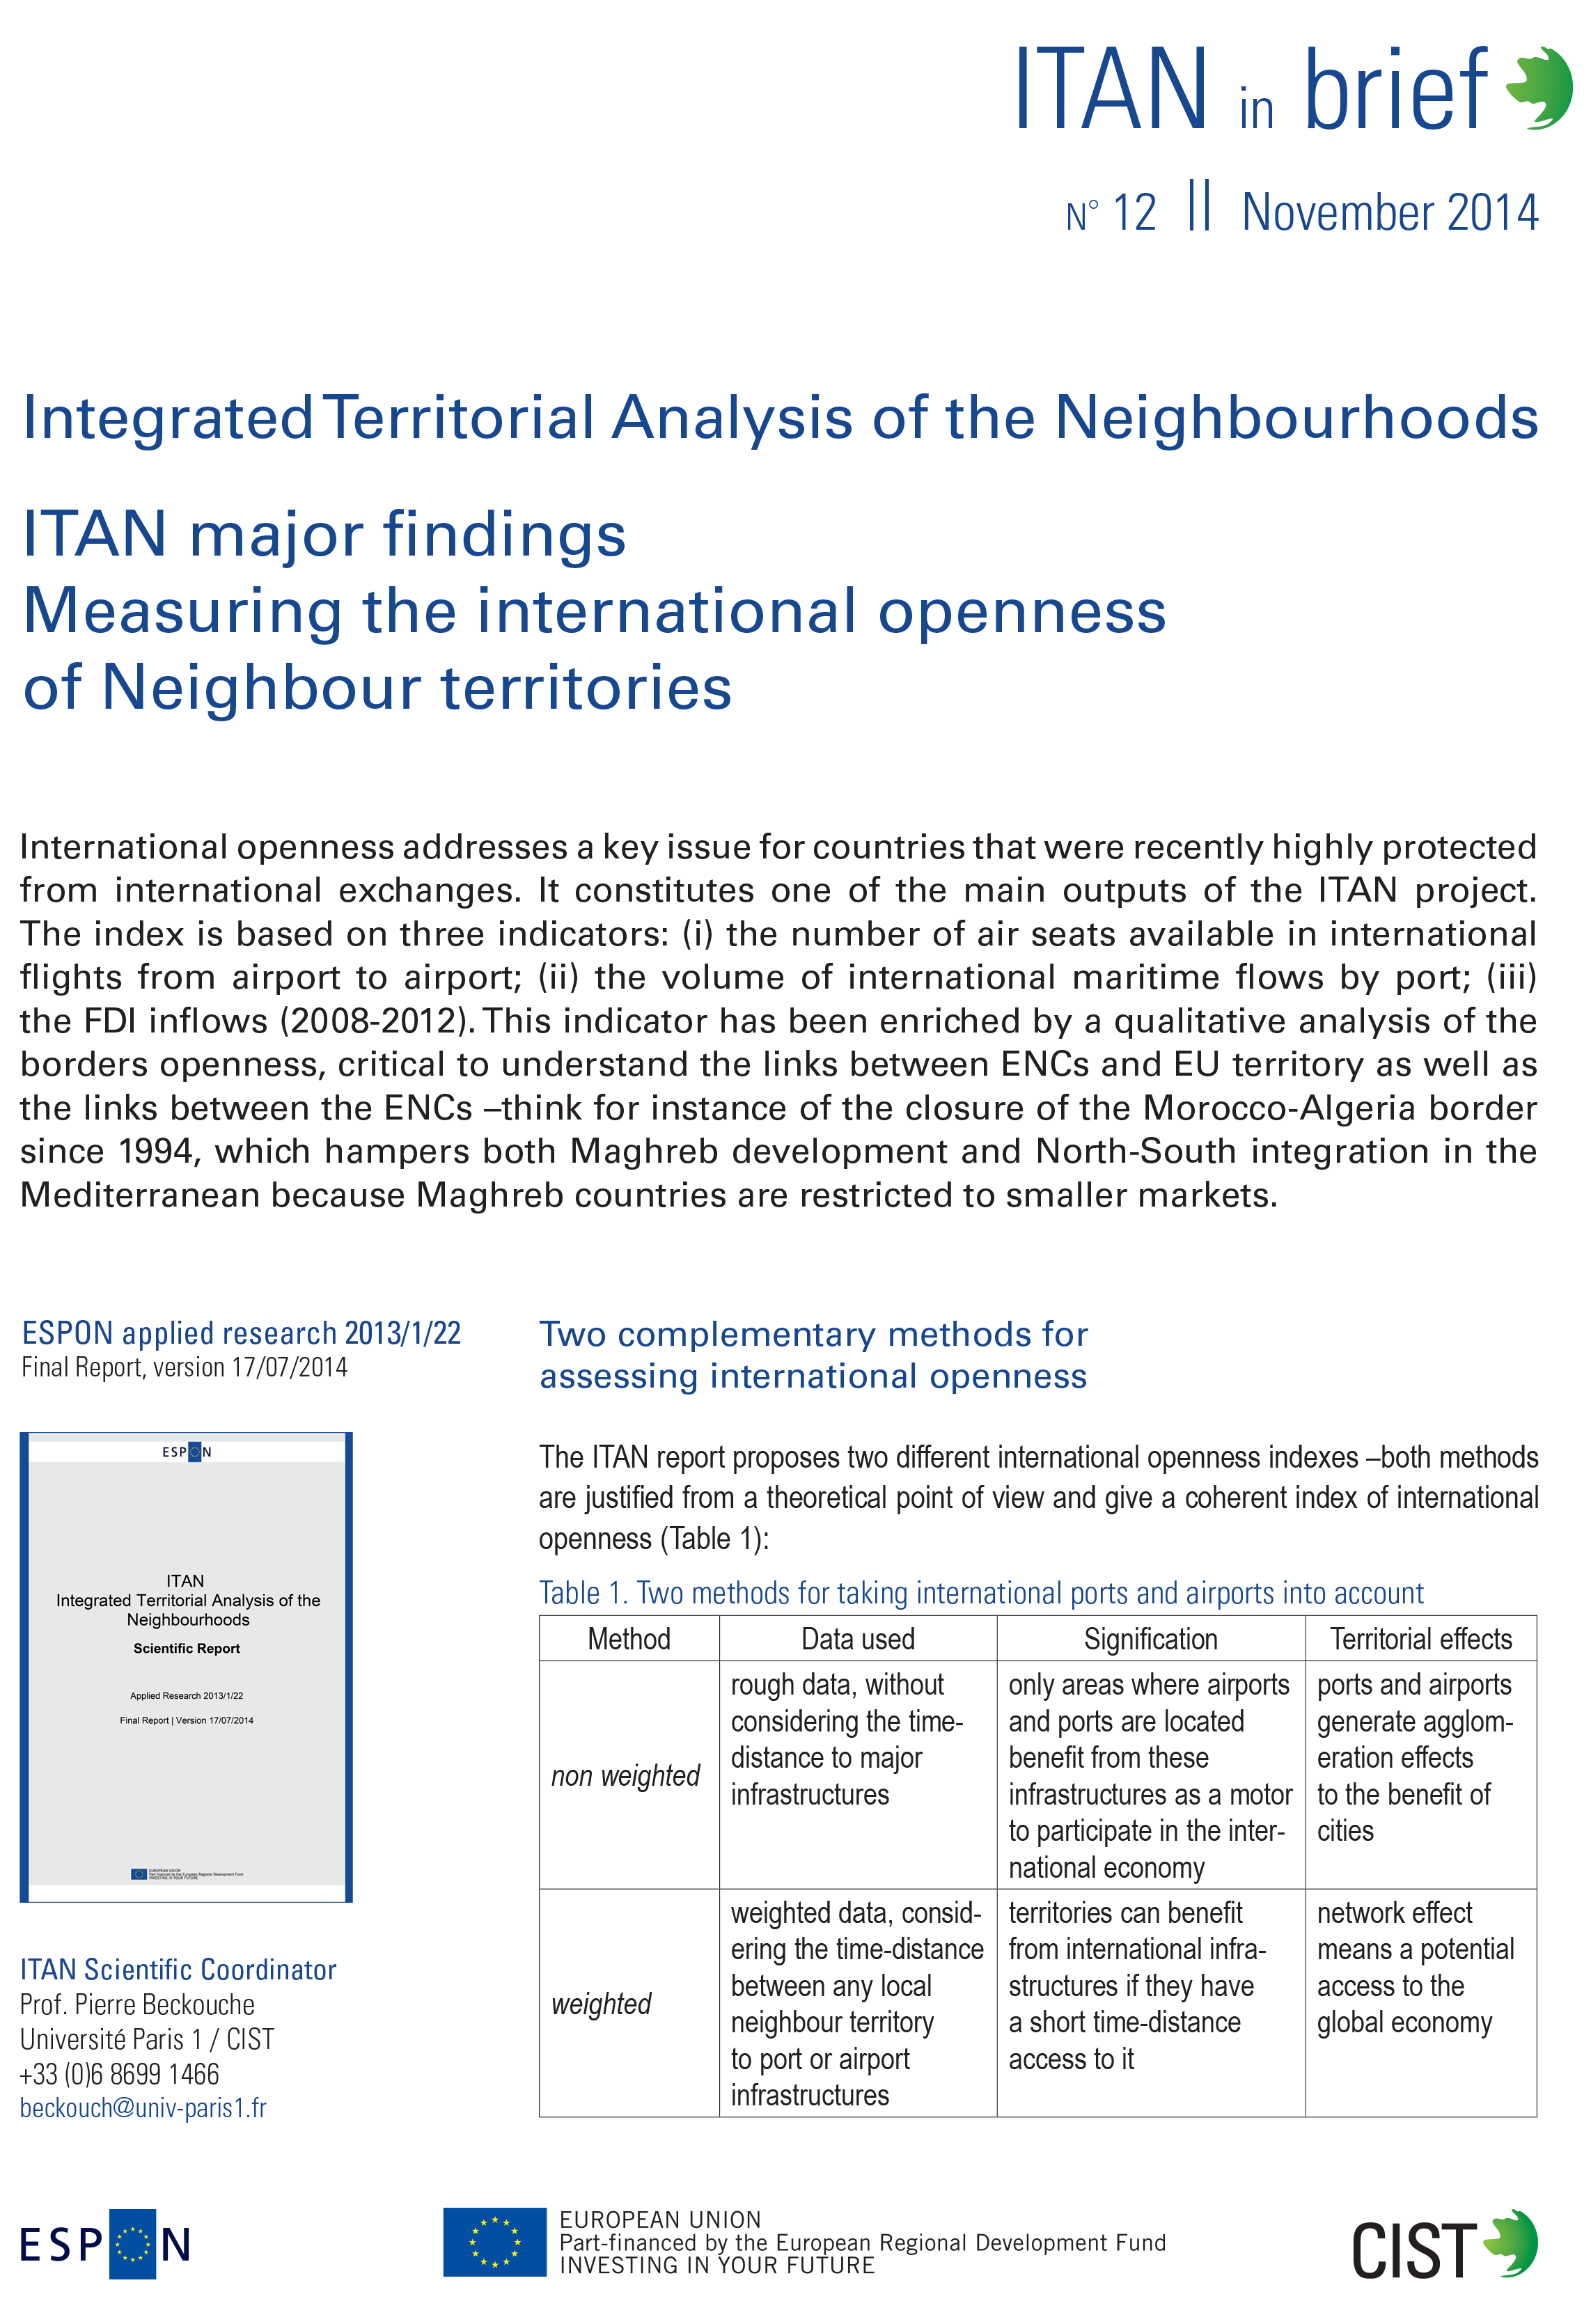 ITAN in brief n. 12 - Measuring the international openness of Neighbour territories, October 2014